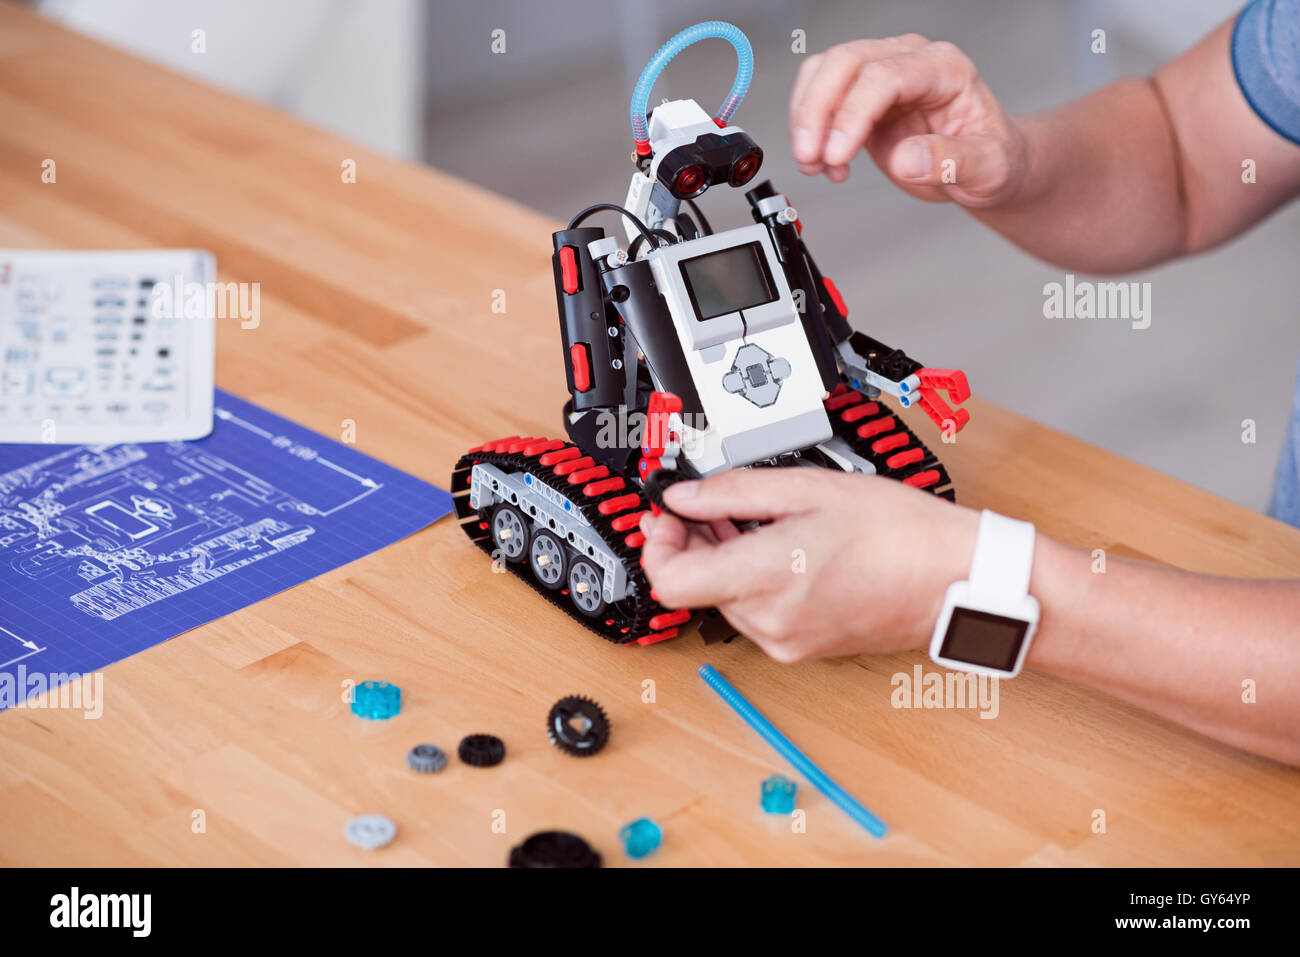 Pleasant man constructing robot - Stock Image